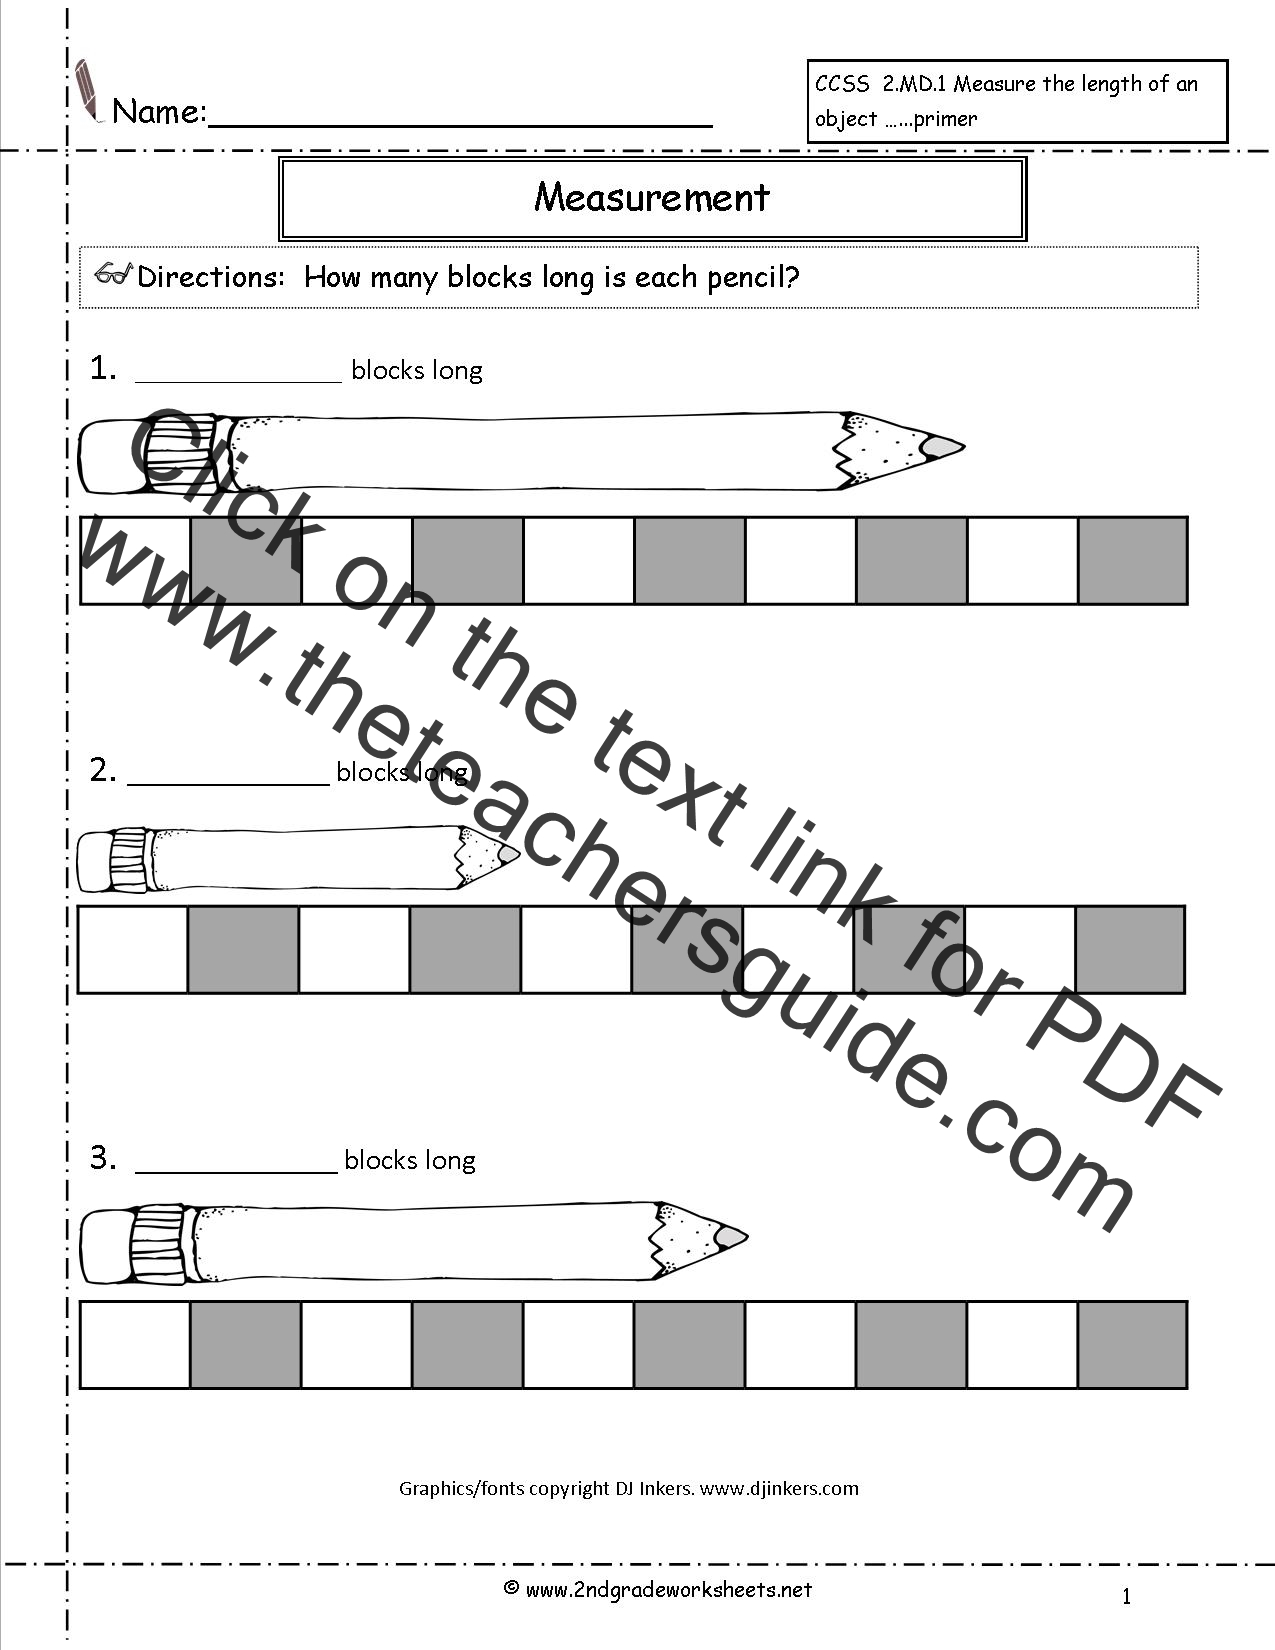 worksheet Free Measurement Worksheets ccss 2 md 1 worksheets measuring worksheet